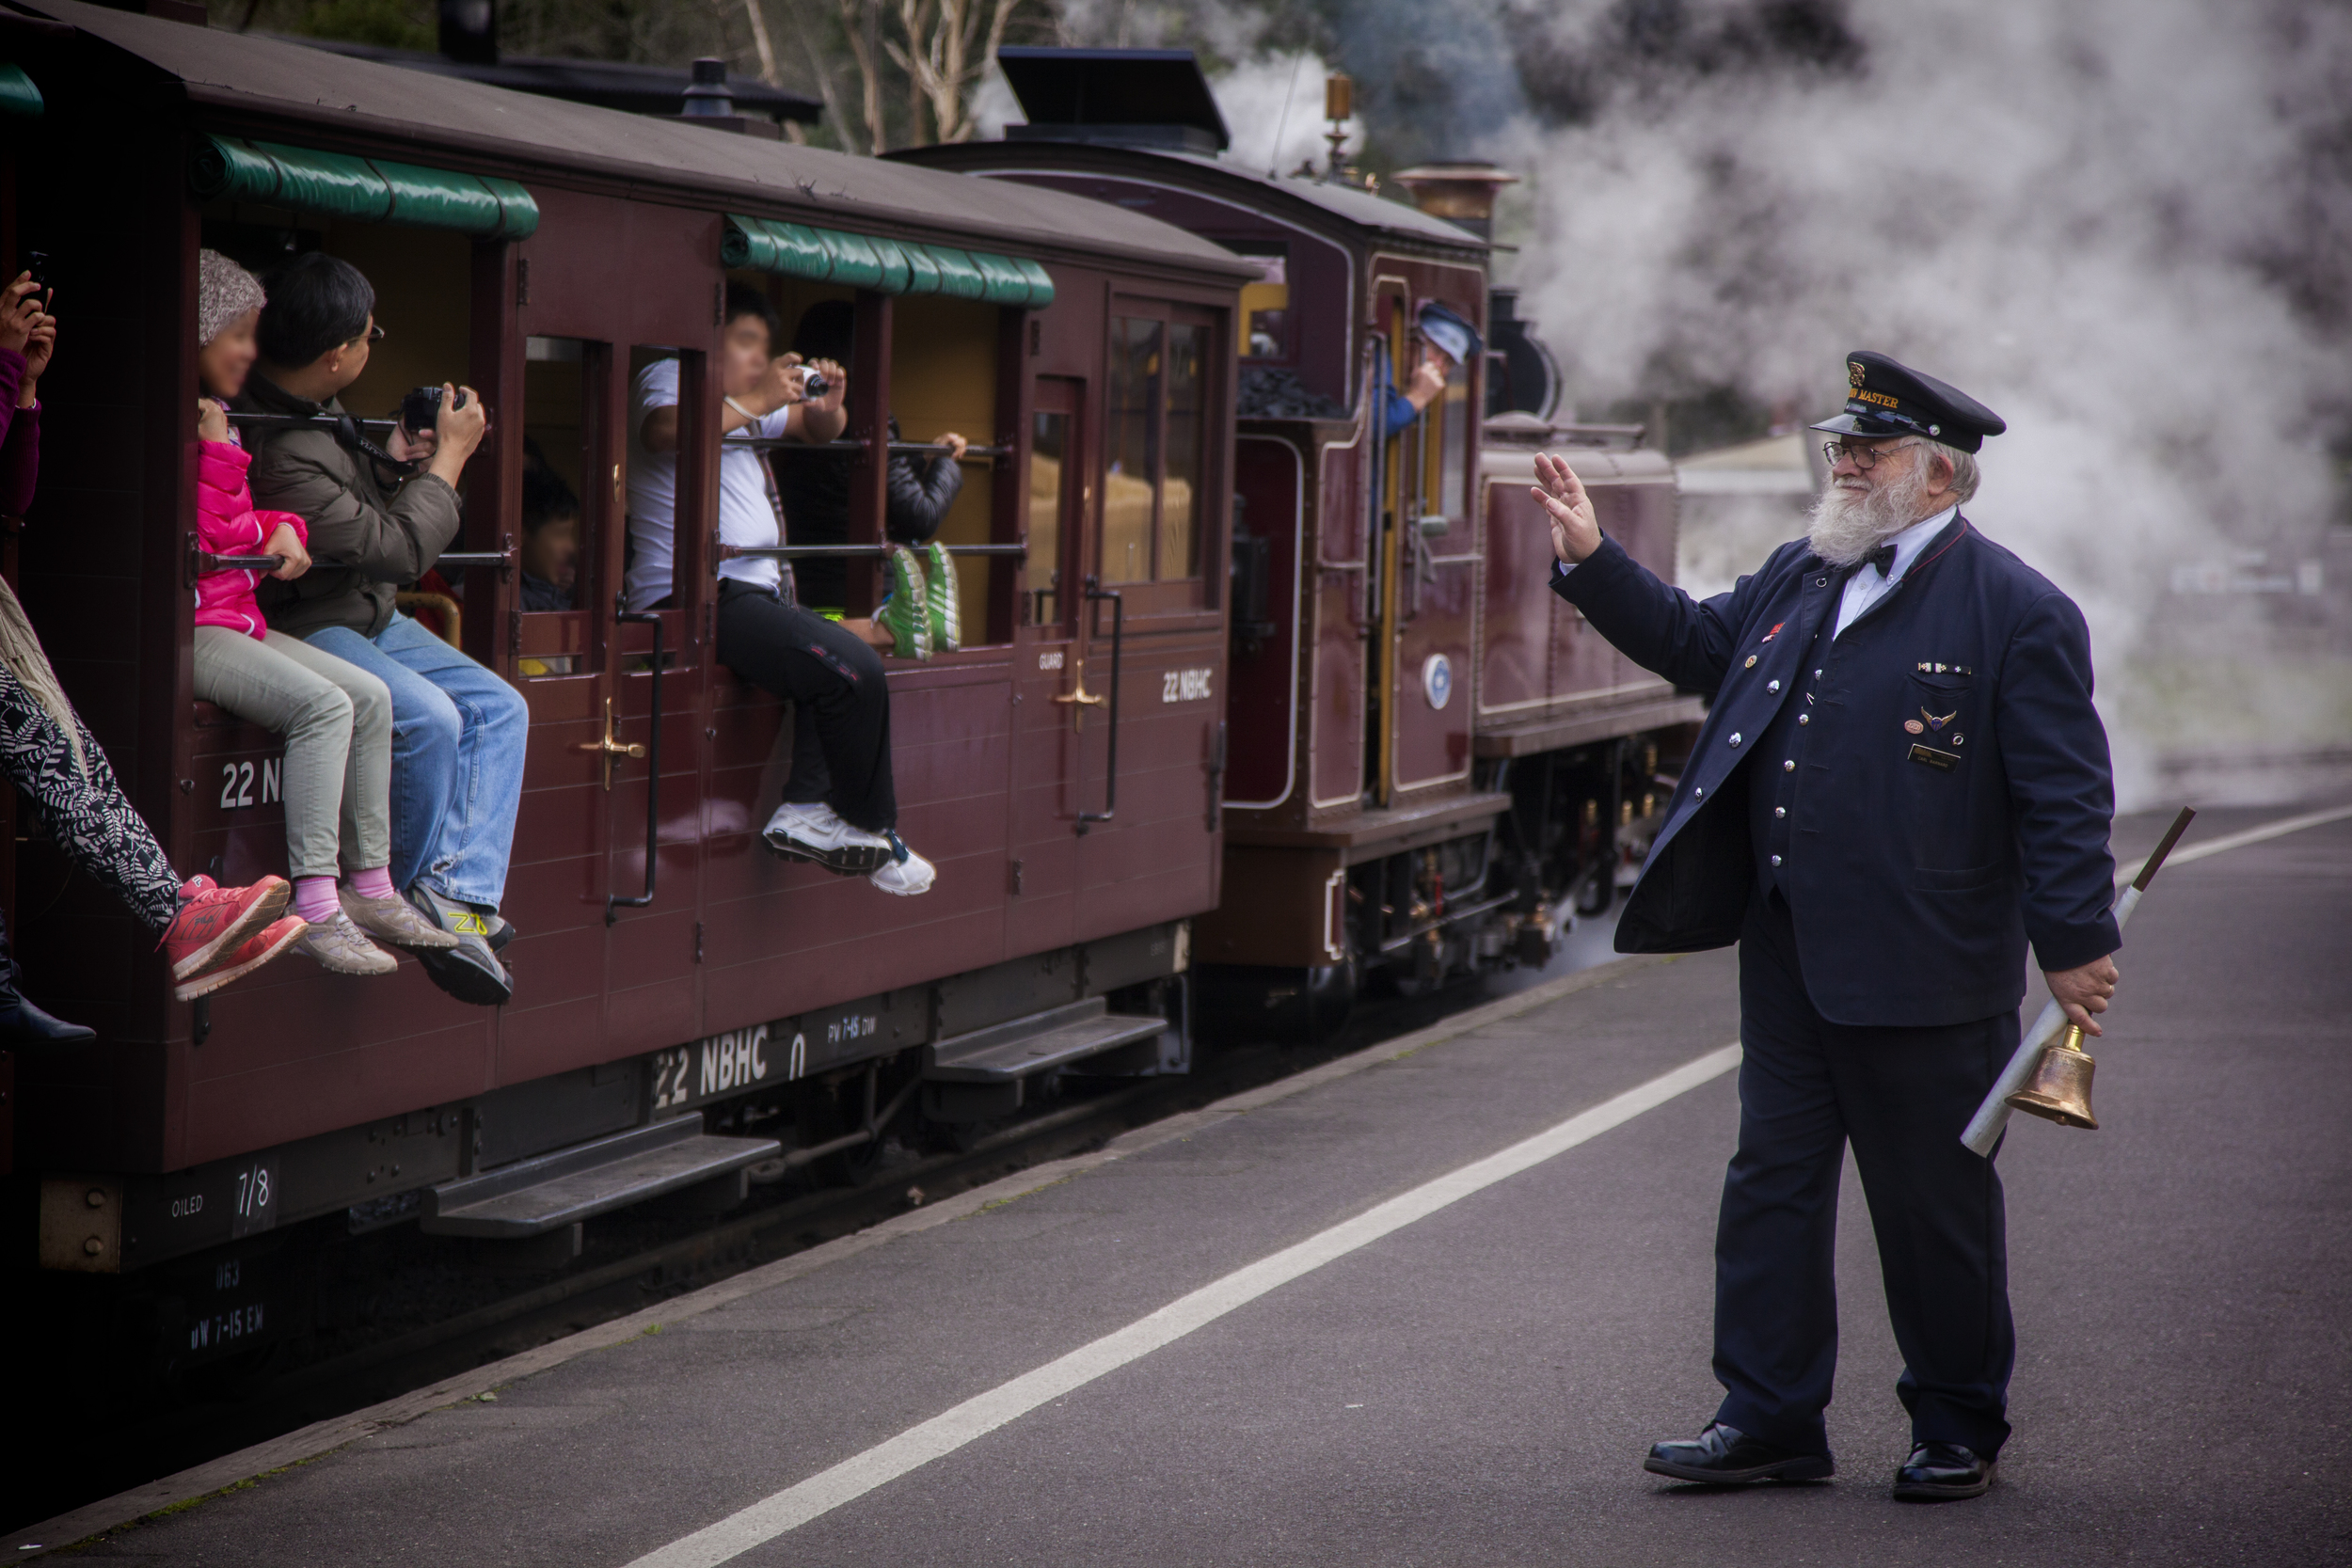 Copy of All aboard Australia's favourite steam train - Puffing Billy